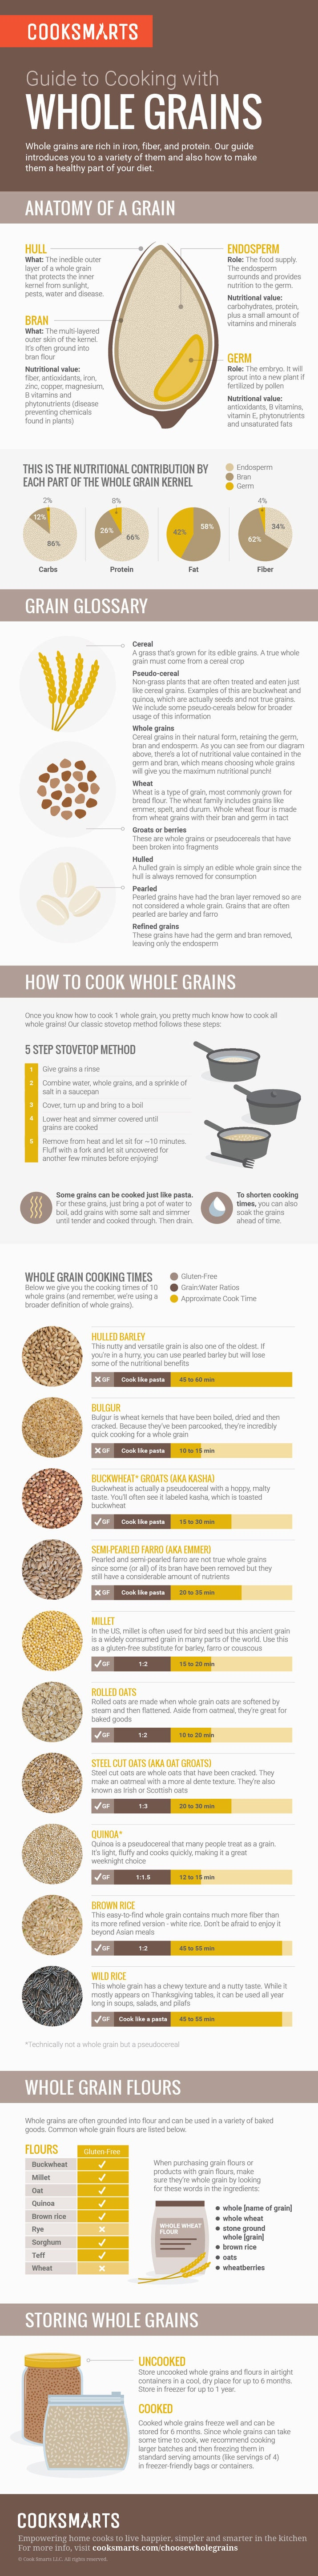 You can read more about why it's a great idea to maybe replace some of the refined carbs in your life with whole grains here.